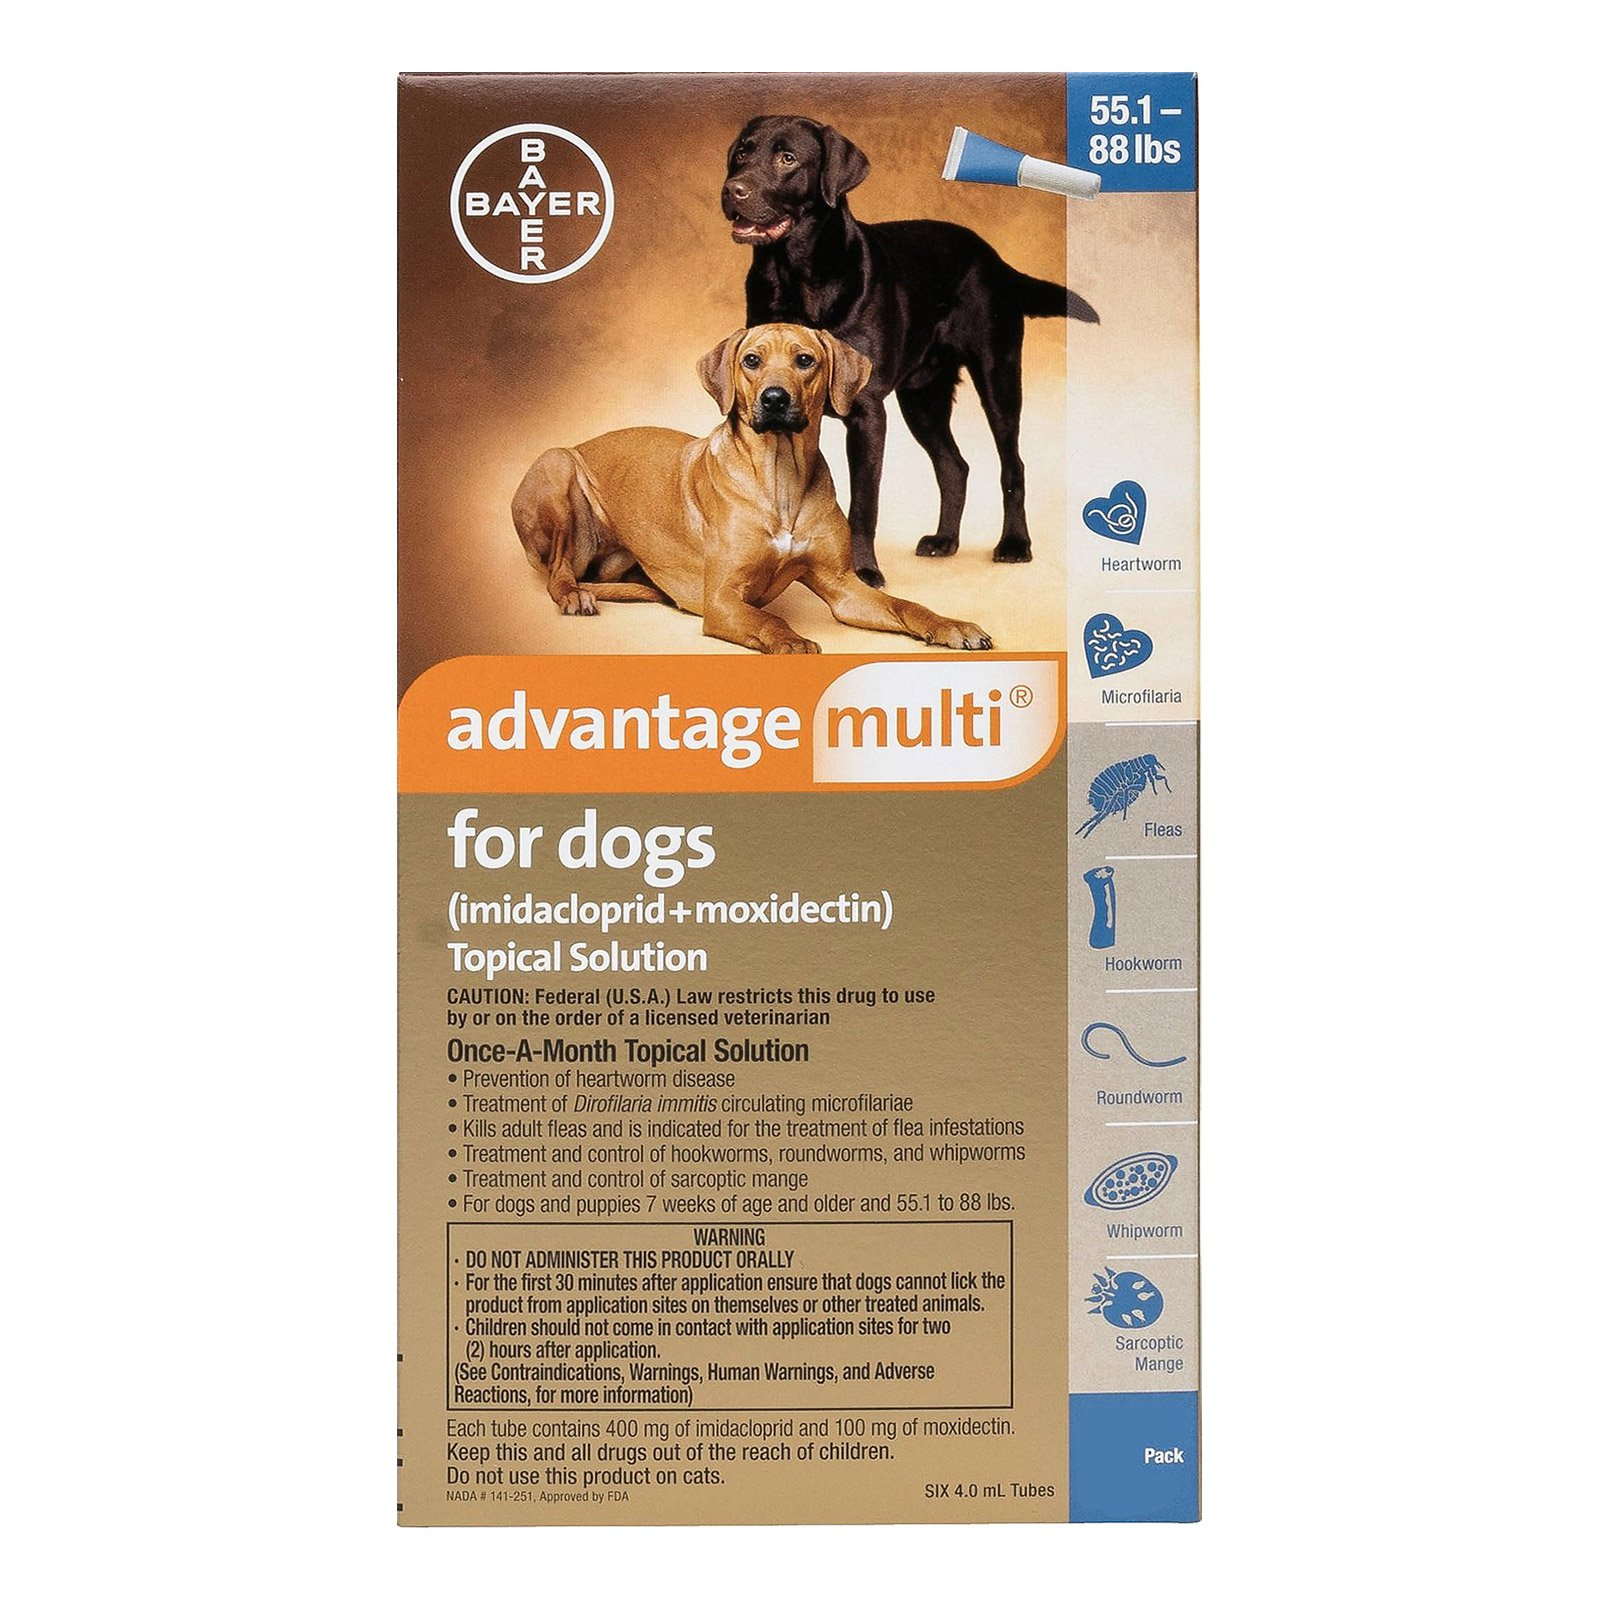 advantage-multi-advocate-extra-large-dogs-55-1-88-lbs-blue